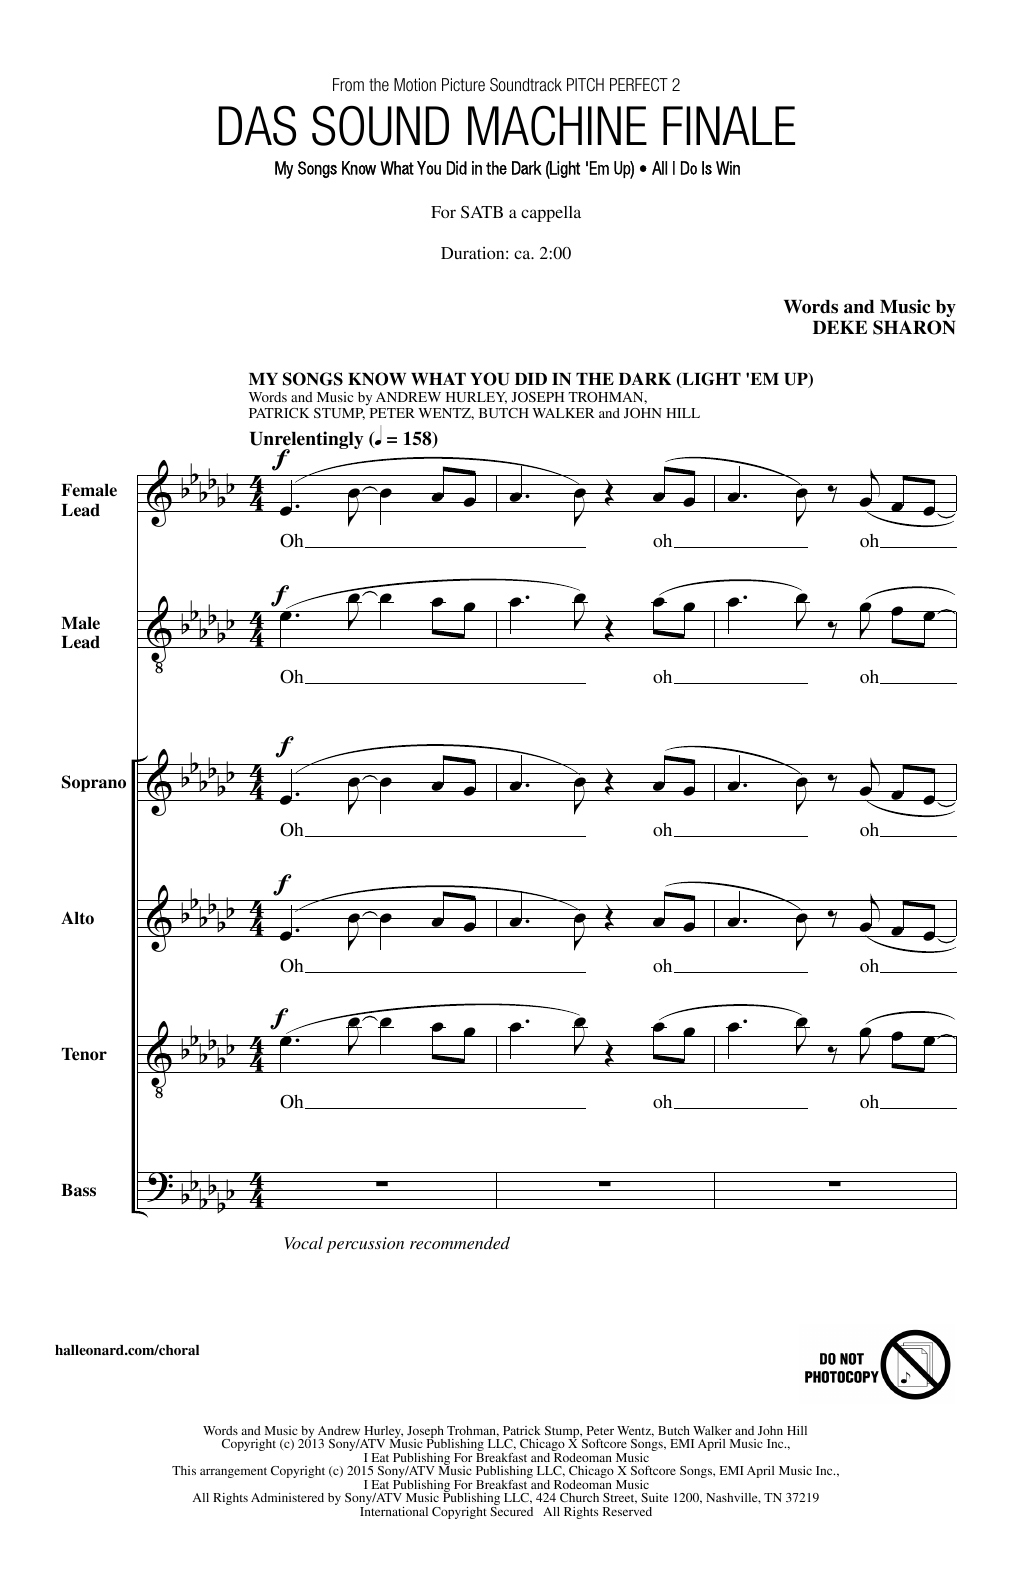 Deke Sharon Das Sound Machine Finale sheet music notes and chords. Download Printable PDF.